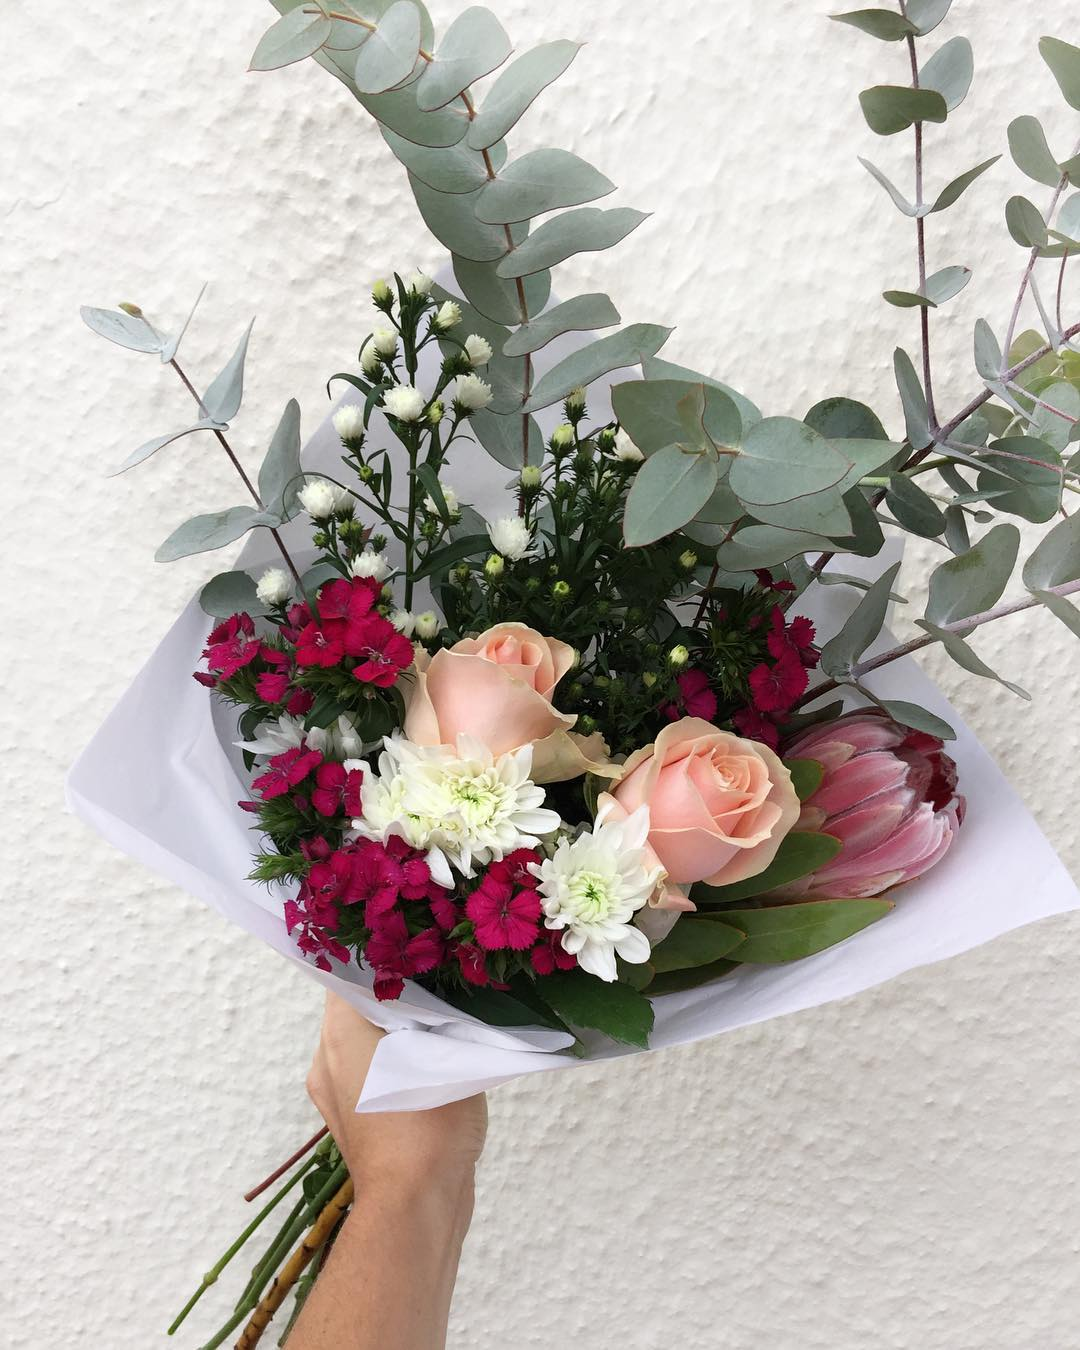 Today's Posy is Proteas and pearl roses with sweet William, daisies, sprays and penny gum 💕 Order online before 12:30pm for delivery today!